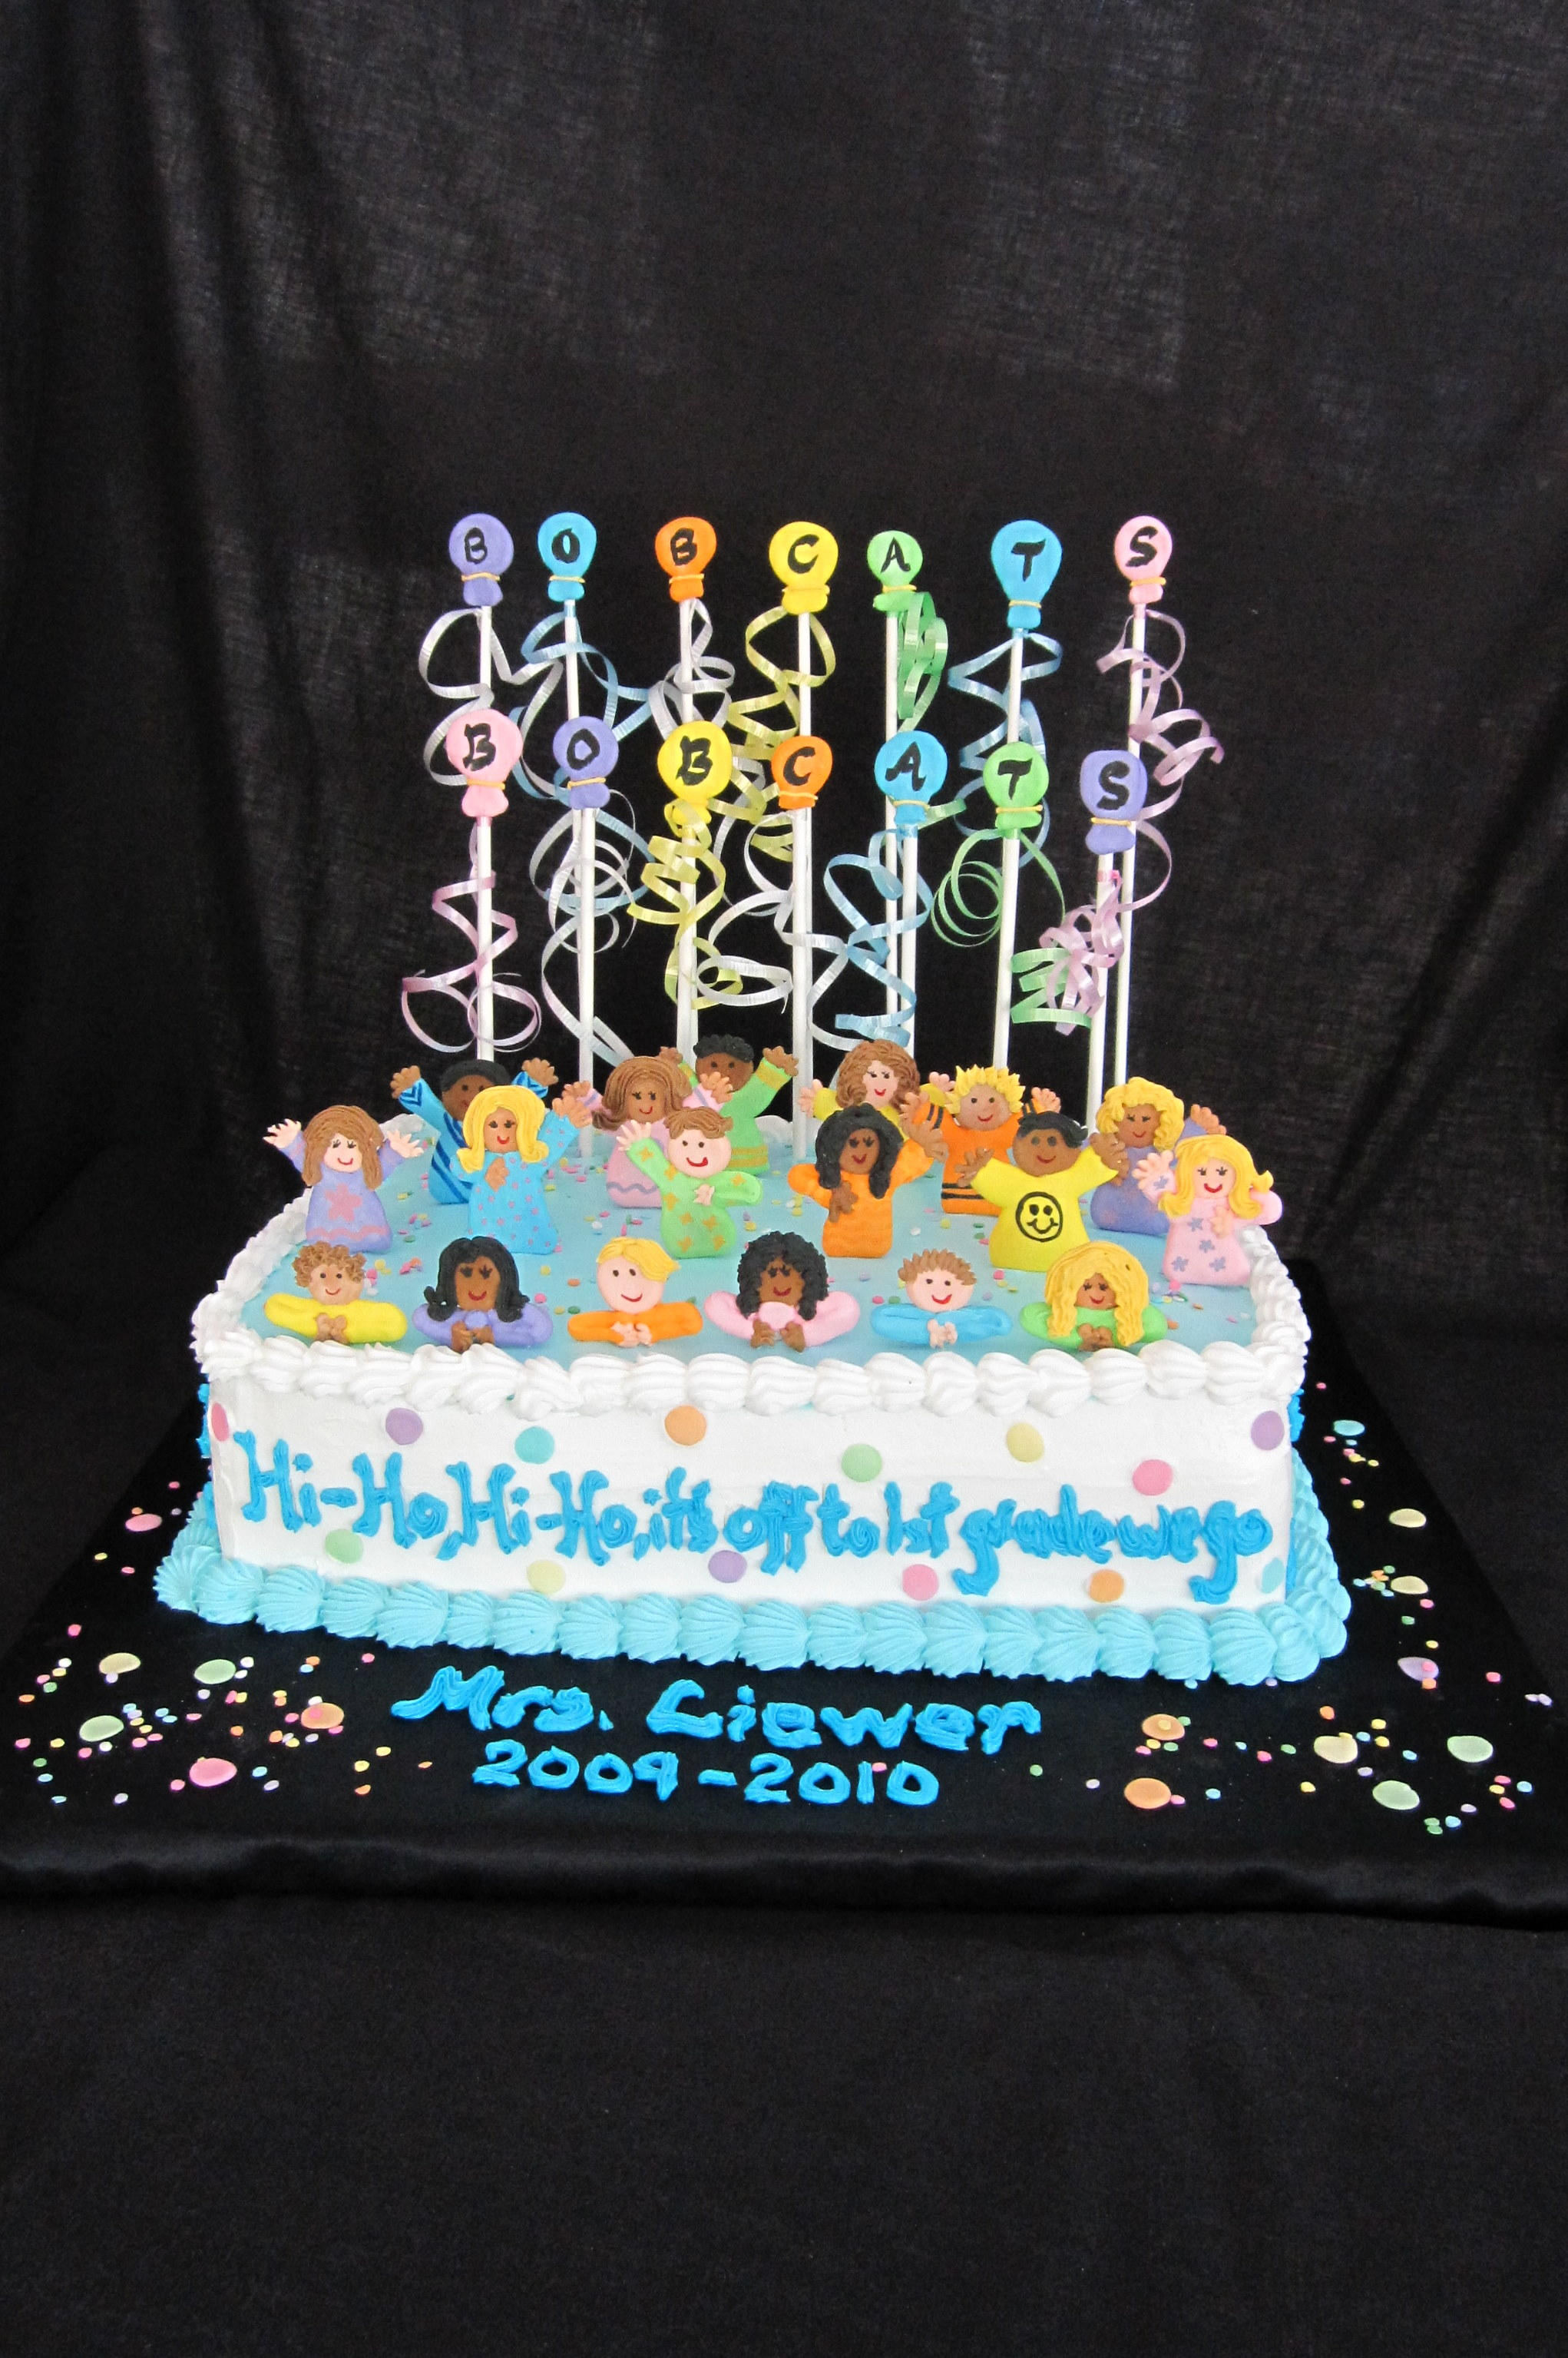 Emmy's kindergarten pool party cake